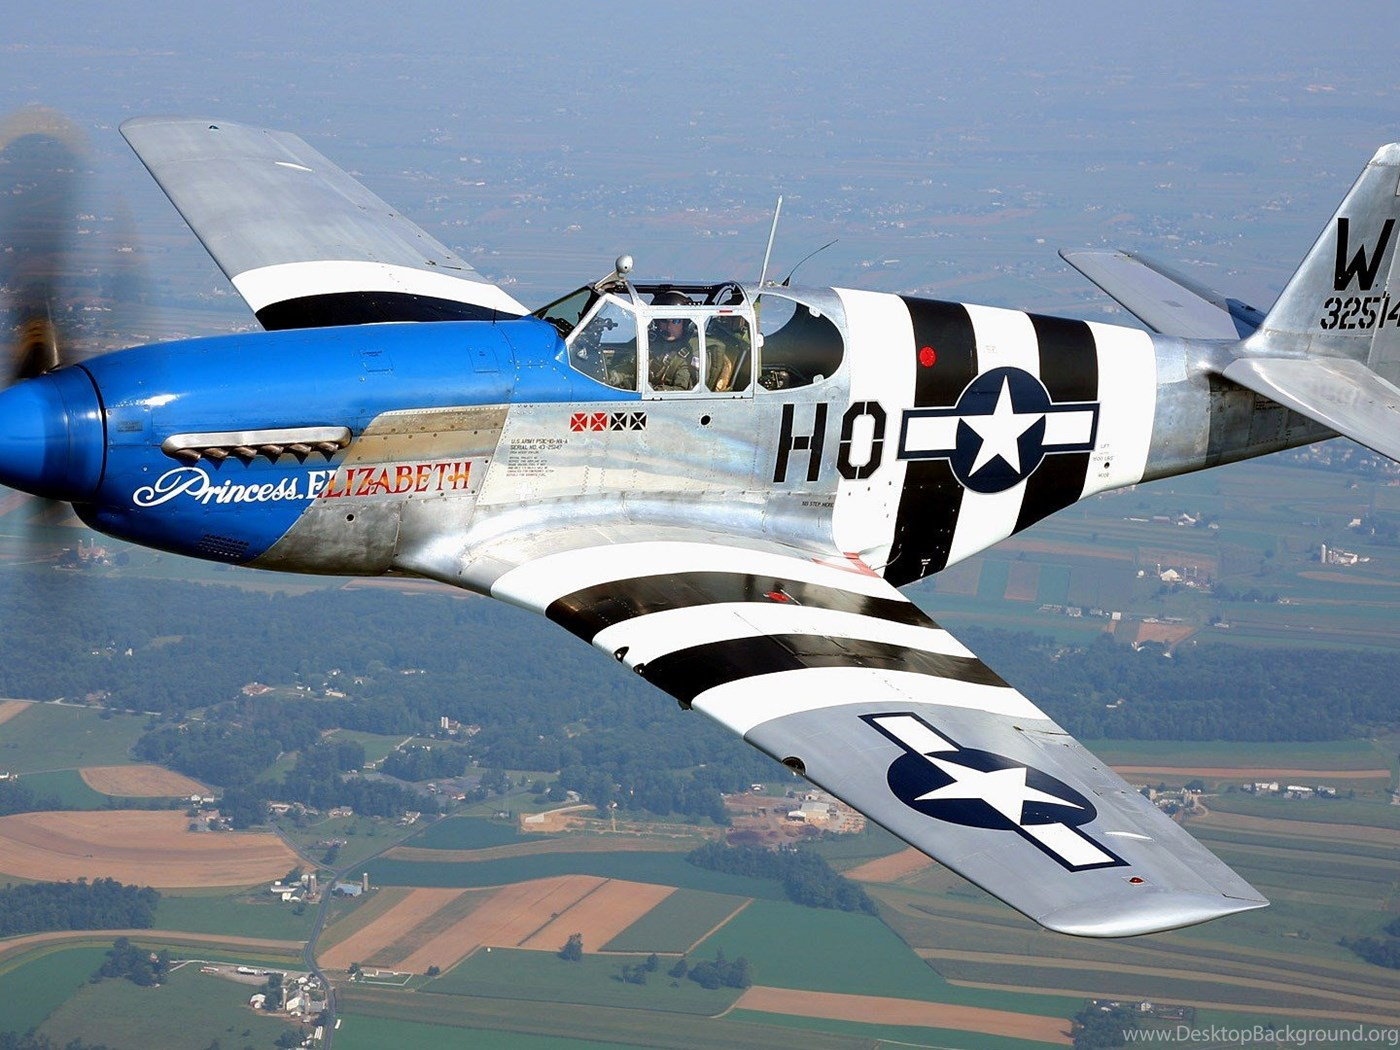 Aircraft Warbird P 51 Mustang Wallpapers Desktop Background